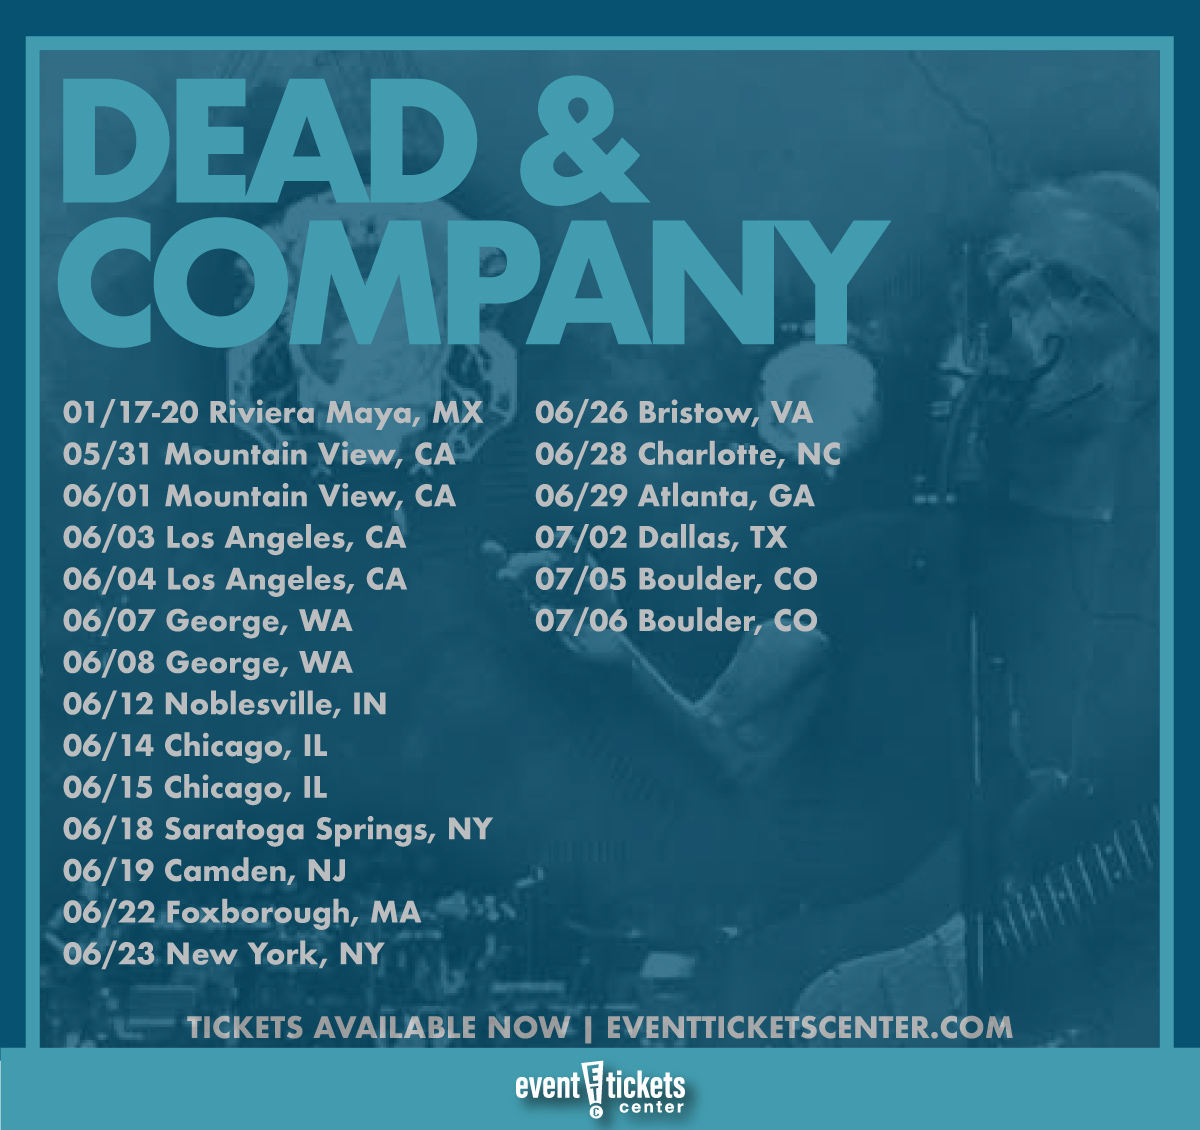 dead and company tour dates